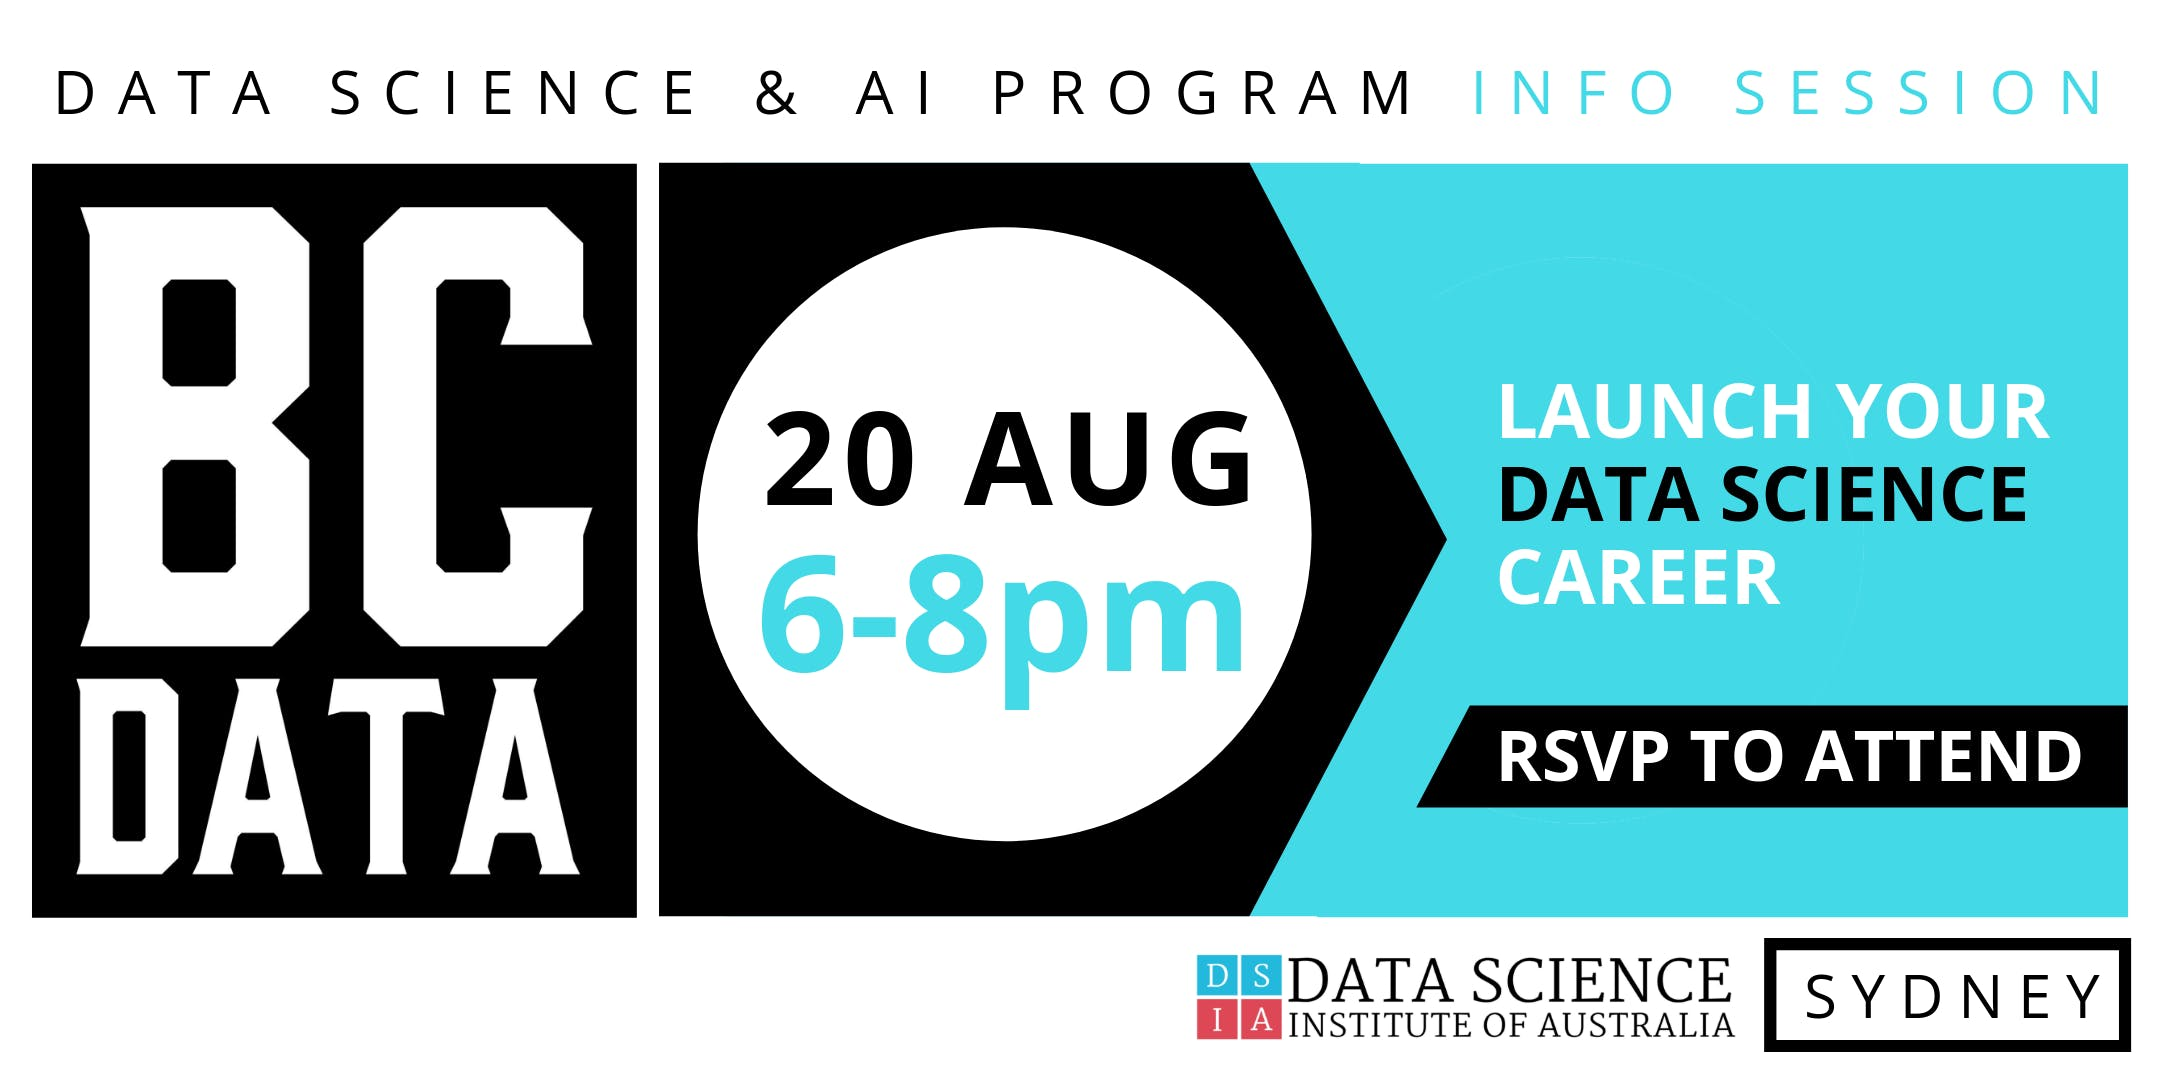 Career Change to Data Science & Artificial Intelligence - Sydney